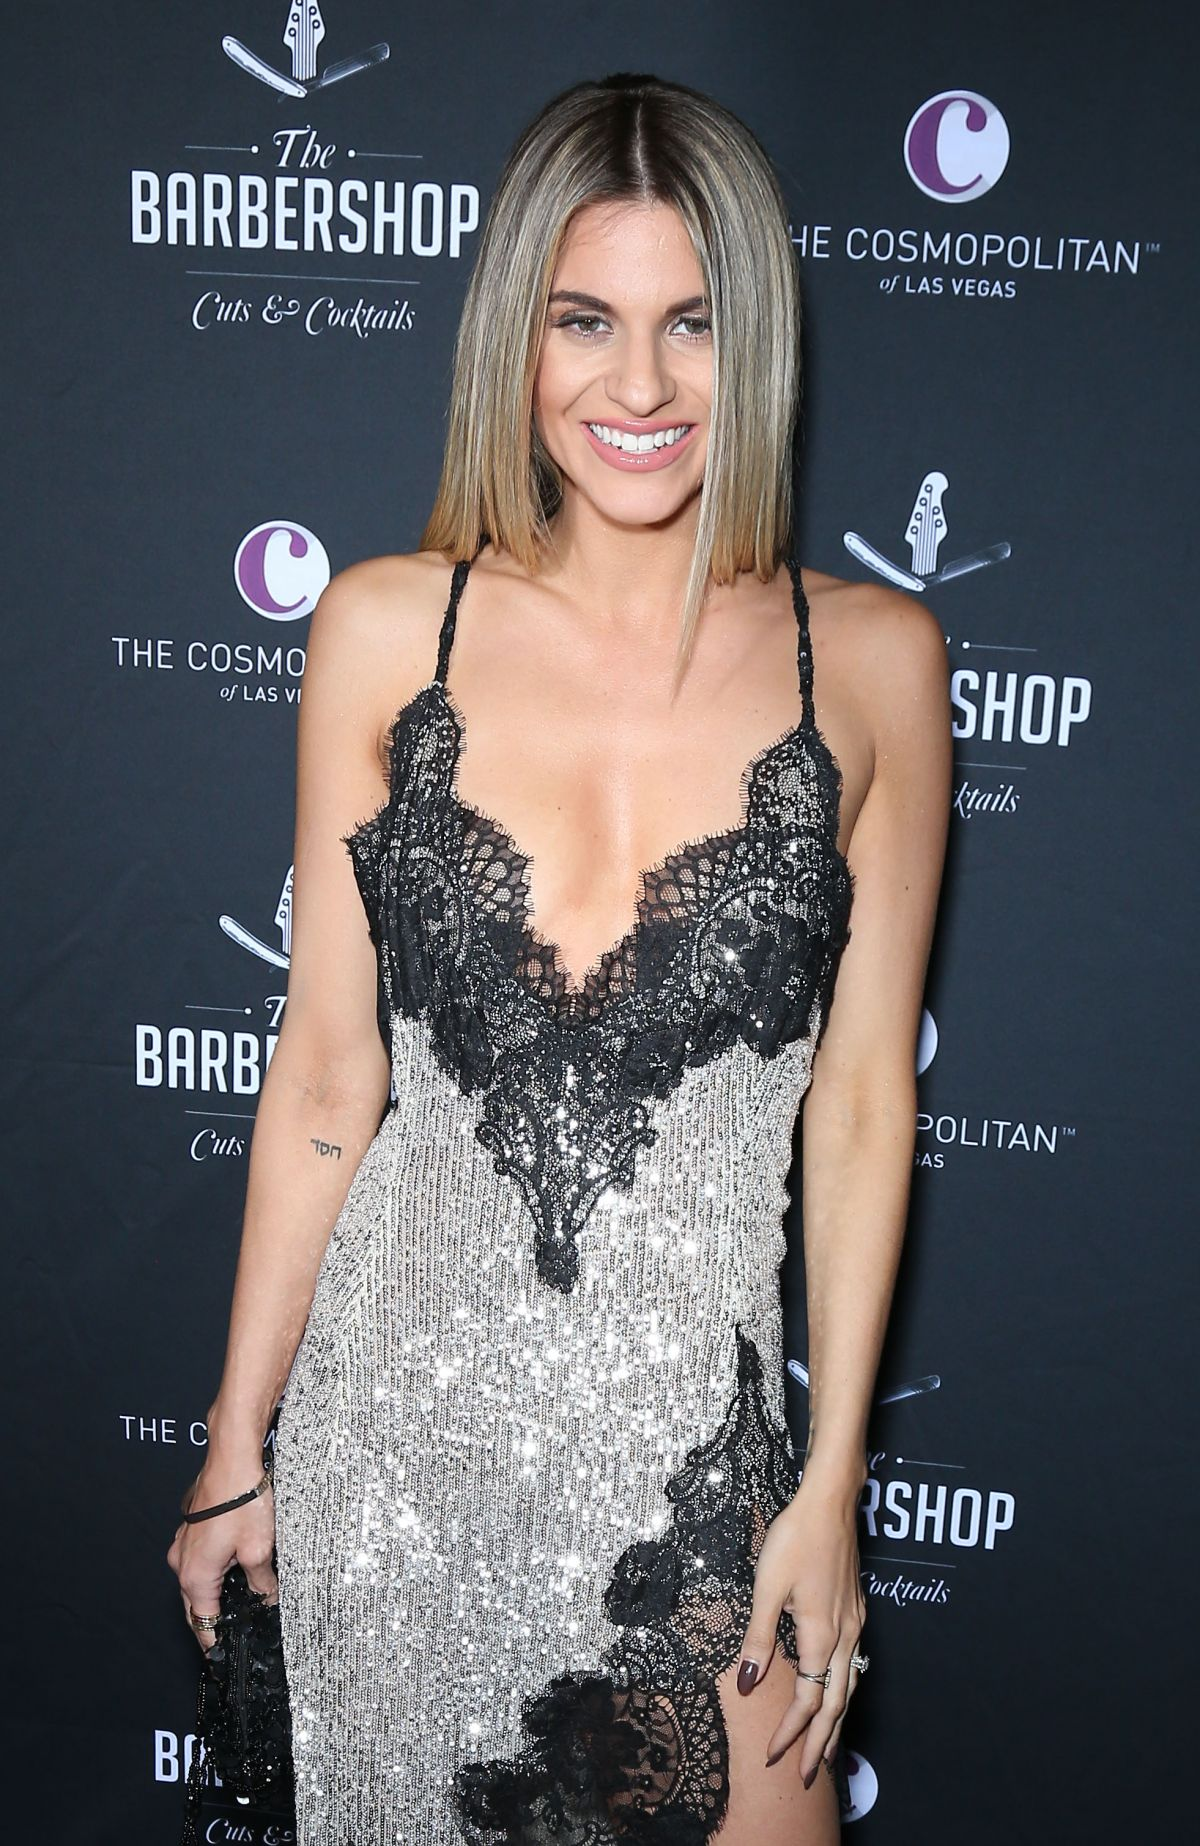 RACHEL MCCORD at Barbershop Cuts and Cocktails Opening, Day